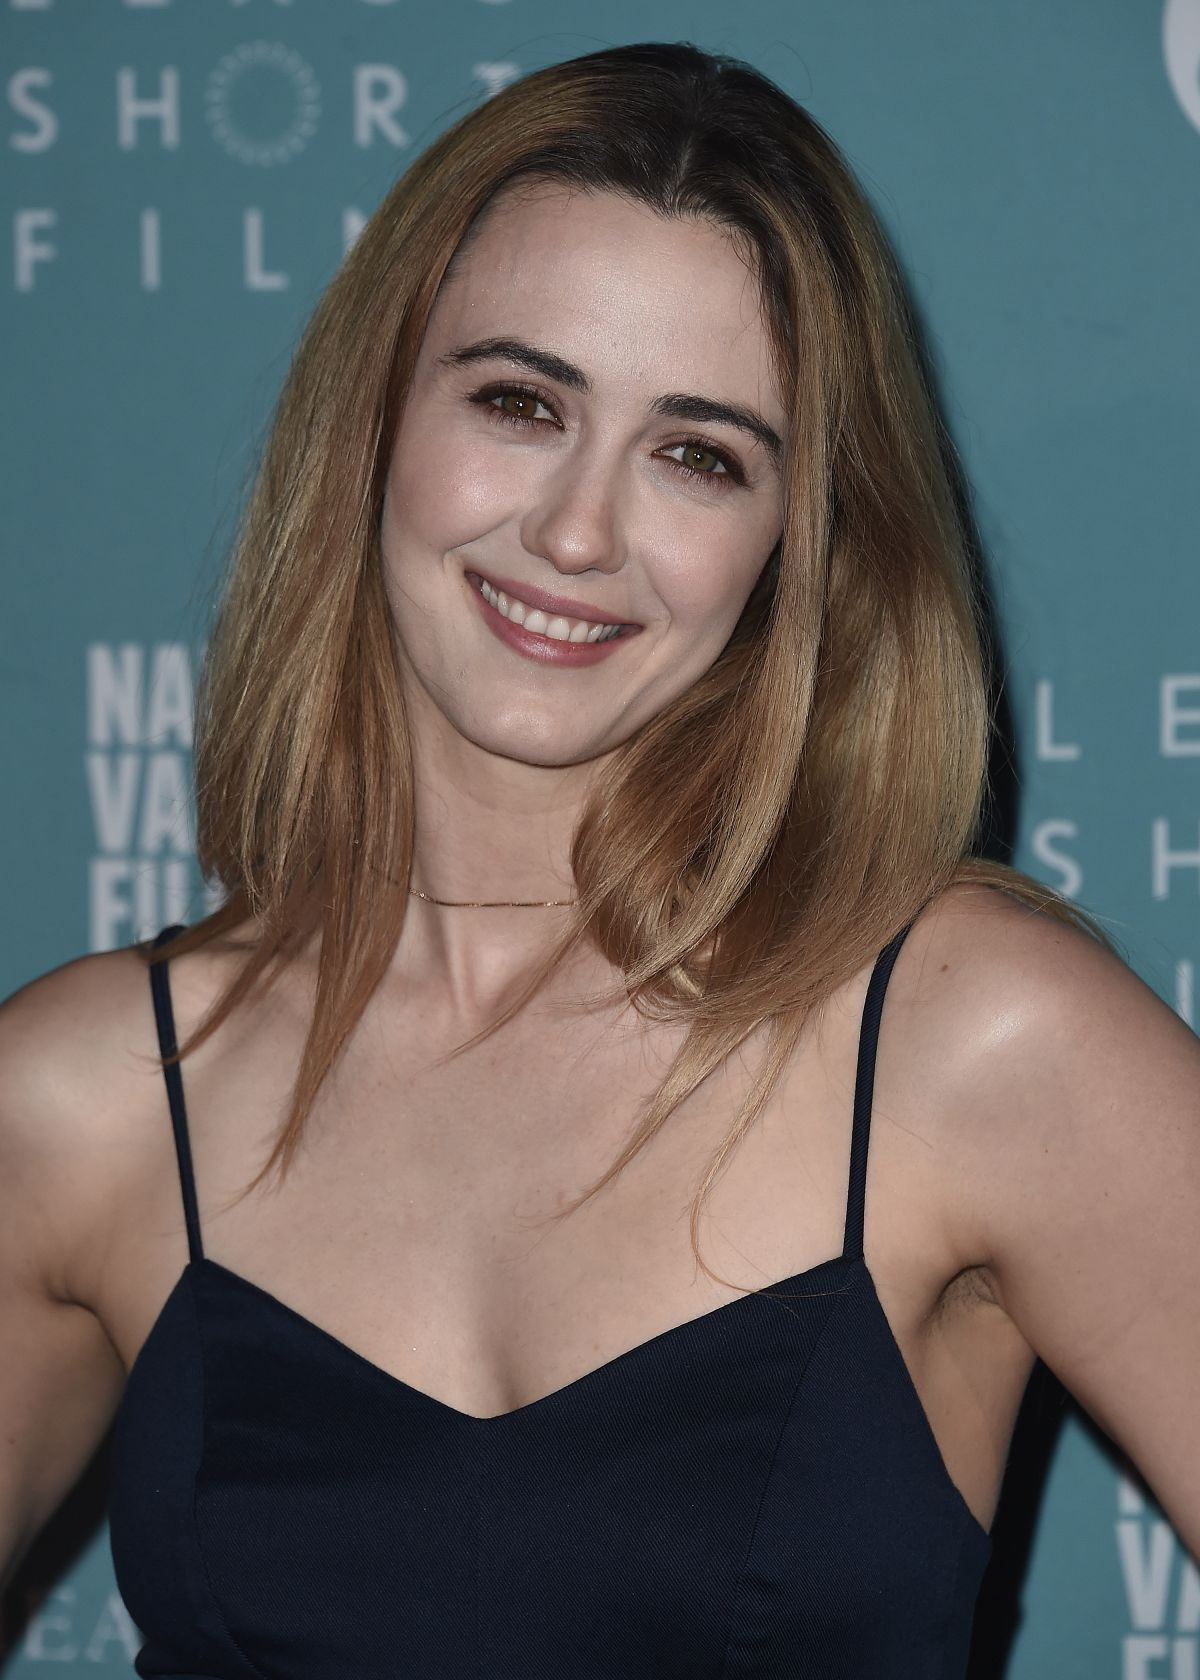 Fappening Madeline Zima  nudes (93 fotos), YouTube, braless